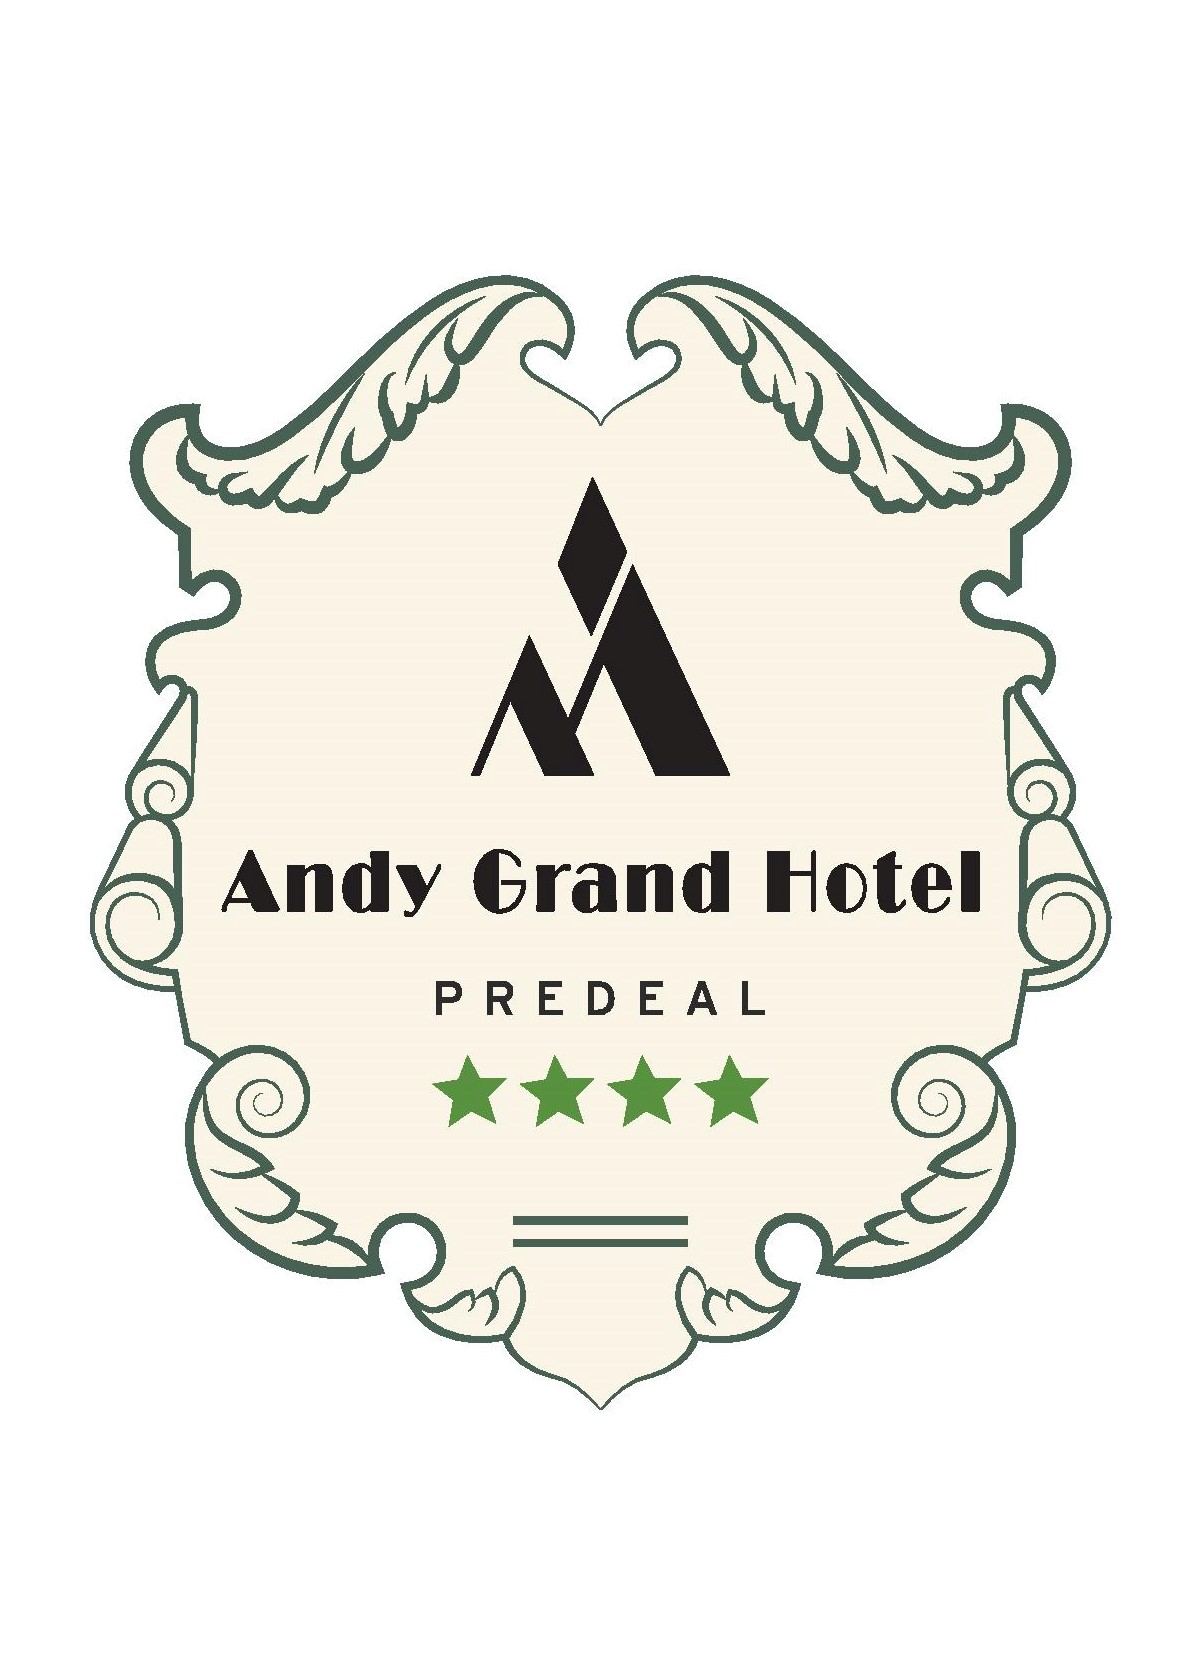 Andy Grand Hotel